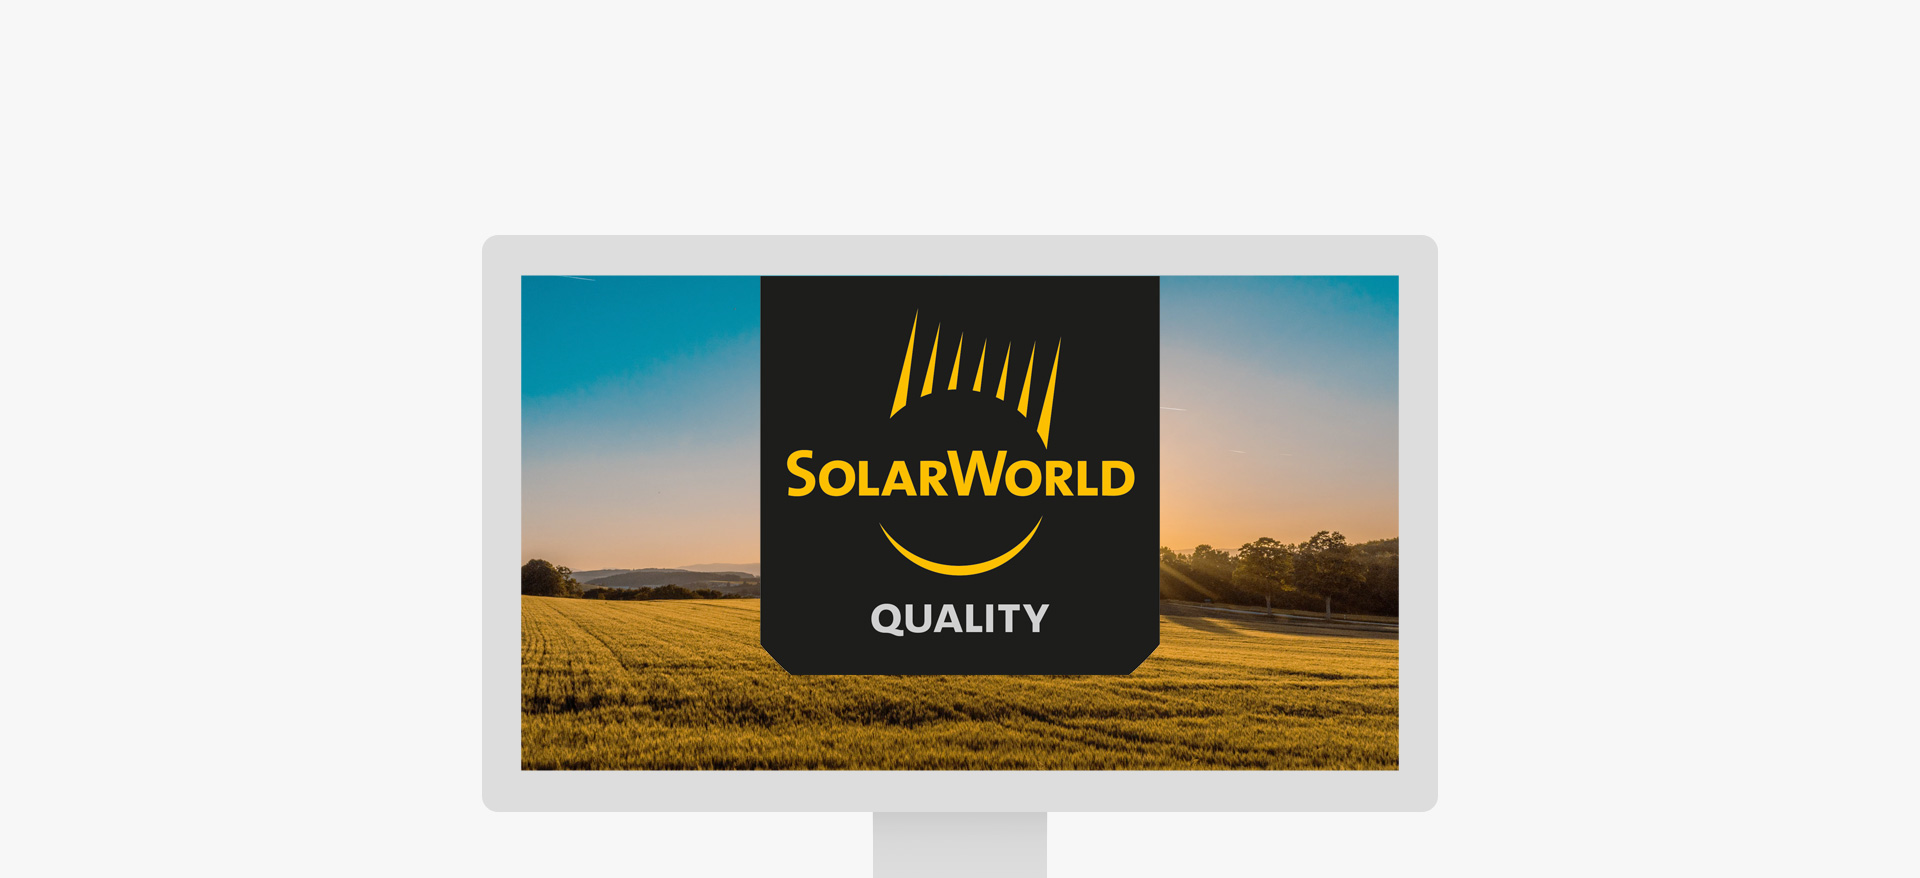 SolarWorld Industries GmbH